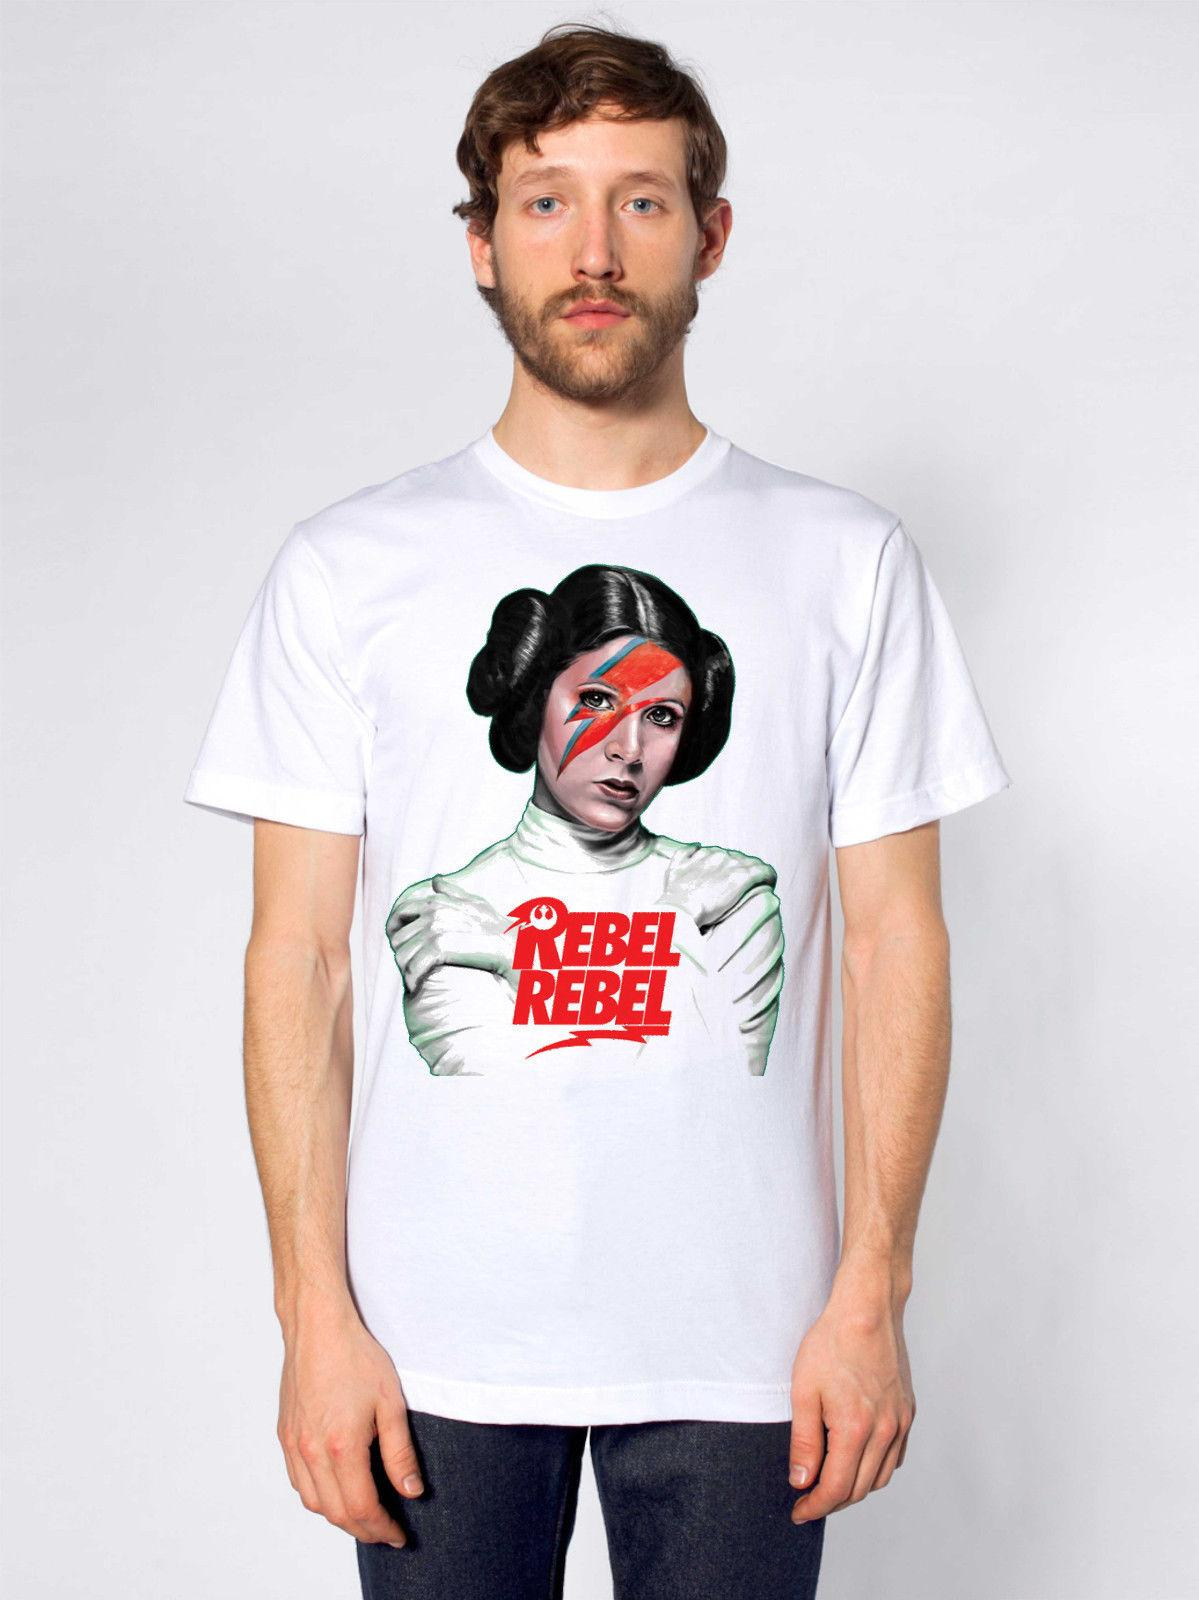 59ba0223462394 Princess Leia Rebel Rebel Tshirt David Bowie Wholesale Discount Carrie  Fisher Harajuku Tops Classic Unique T Shirt T Shirt Shop Online Crazy T  Shirt From ...